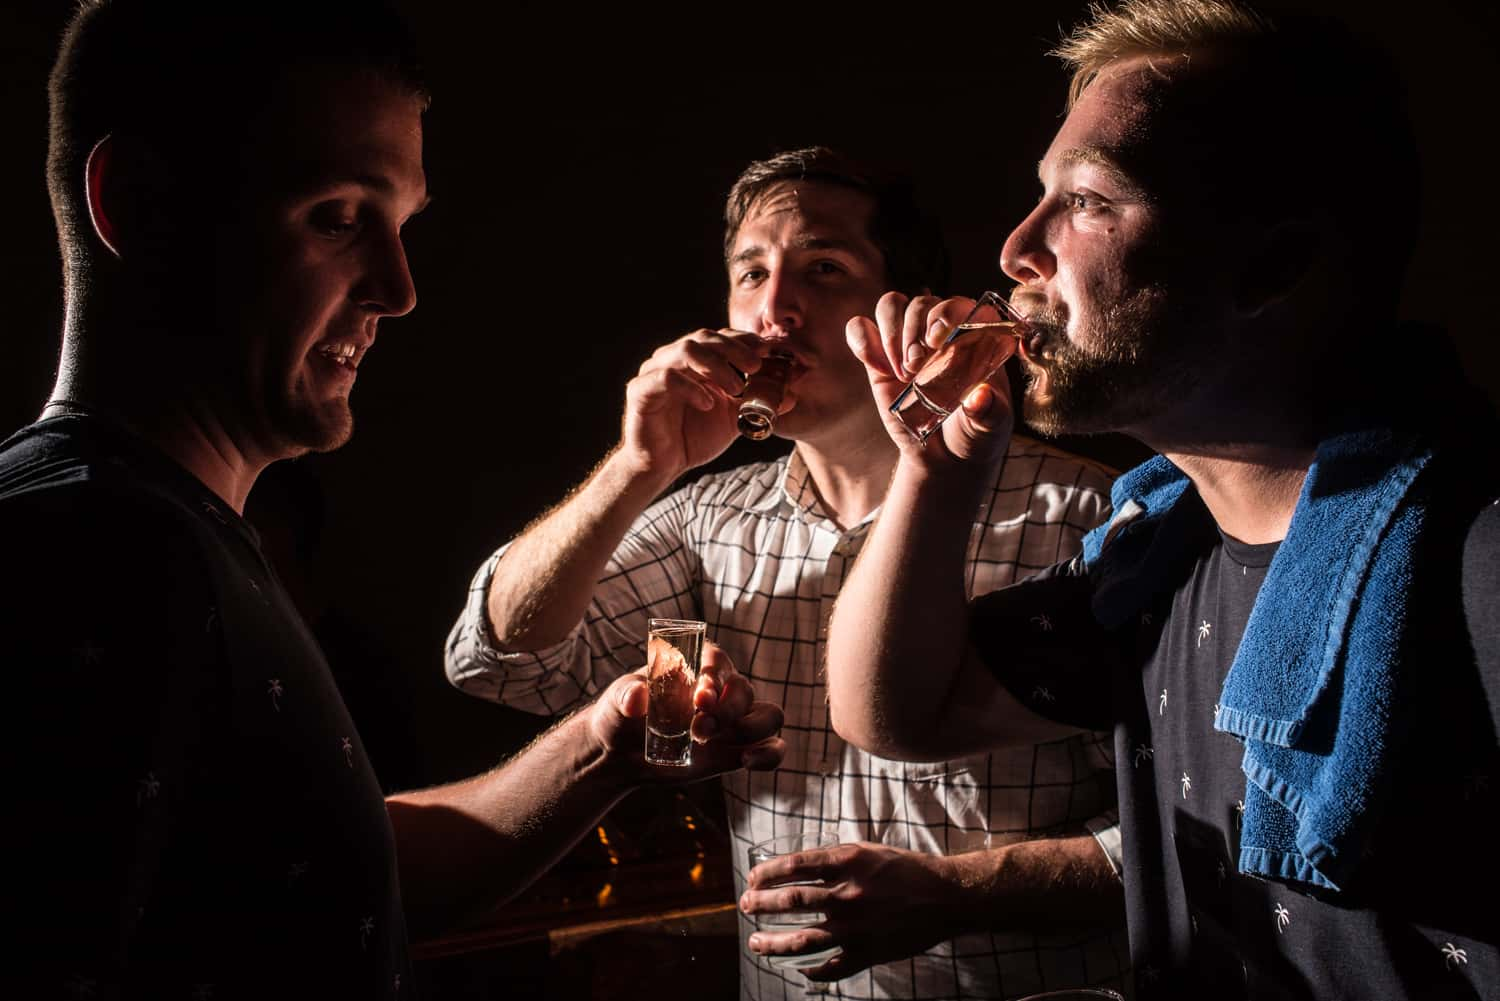 Three men doing tequila shots during wedding reception